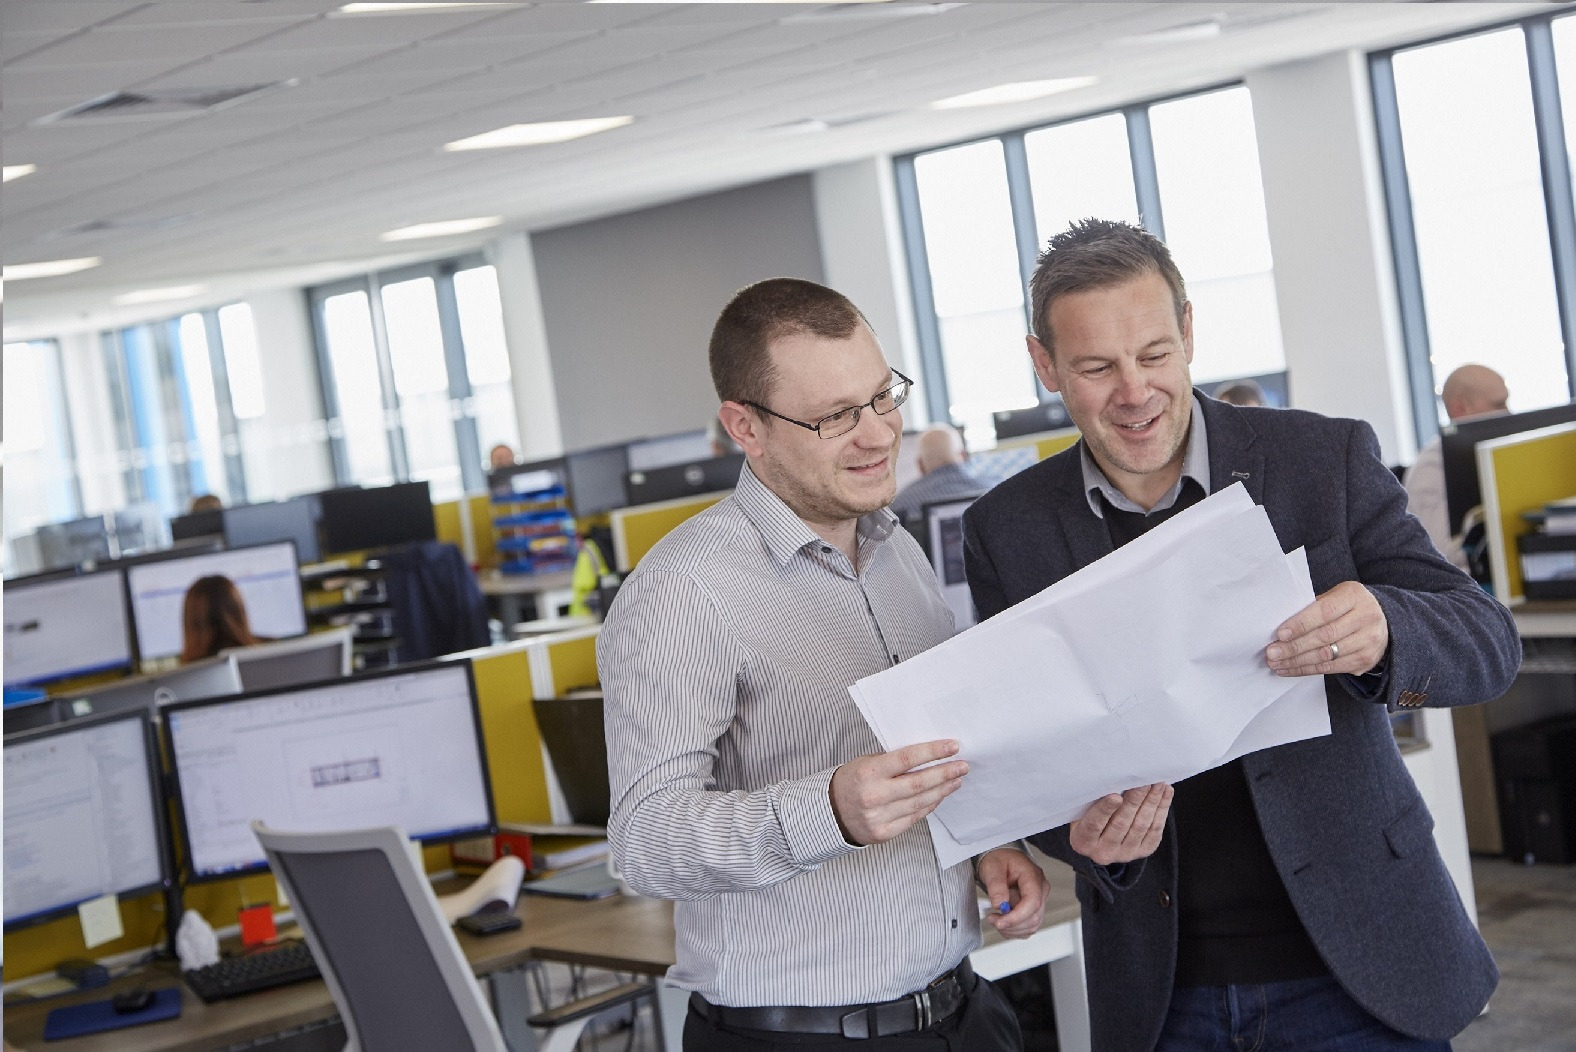 Design Technician Tom Graham, left, and Technical Director Mike Marriott review plans for one of Integra Buildings' latest bespoke modular buildings projects.